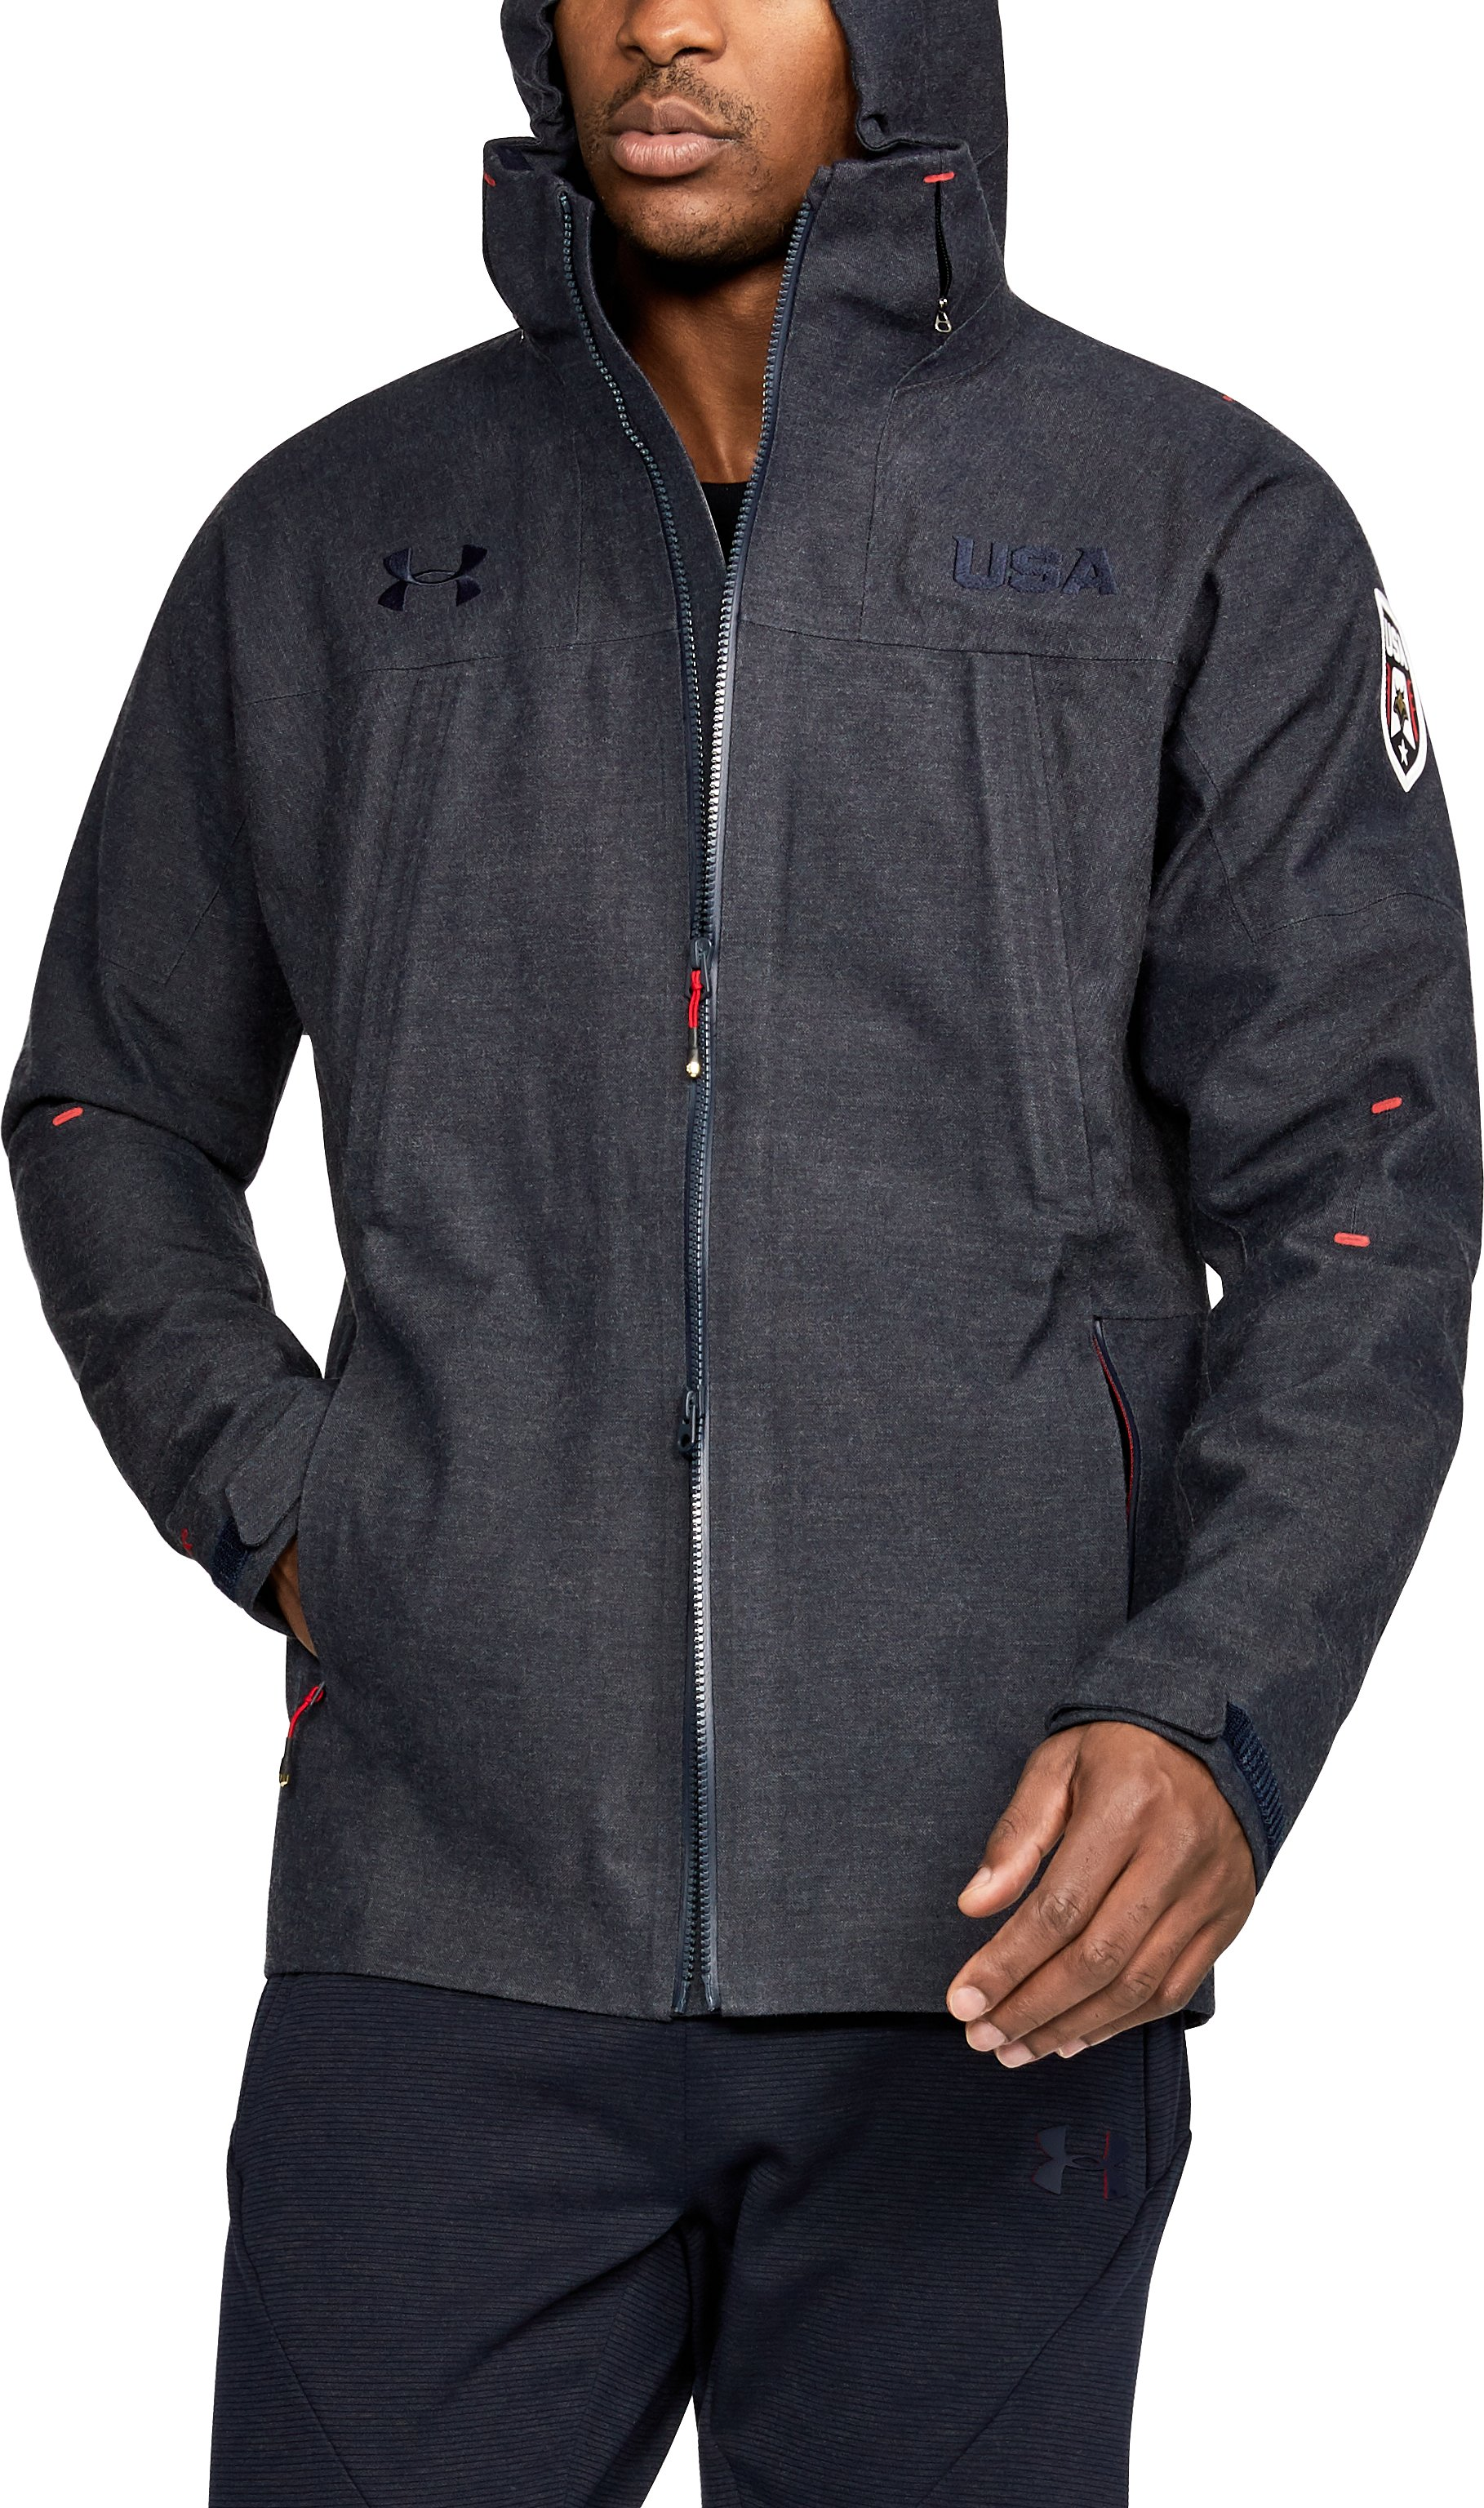 gore-tex shell jackets Men's UA Stars & Stripes Shell Jacket would buy again!!!...Great Jacket....Awesome jacket.